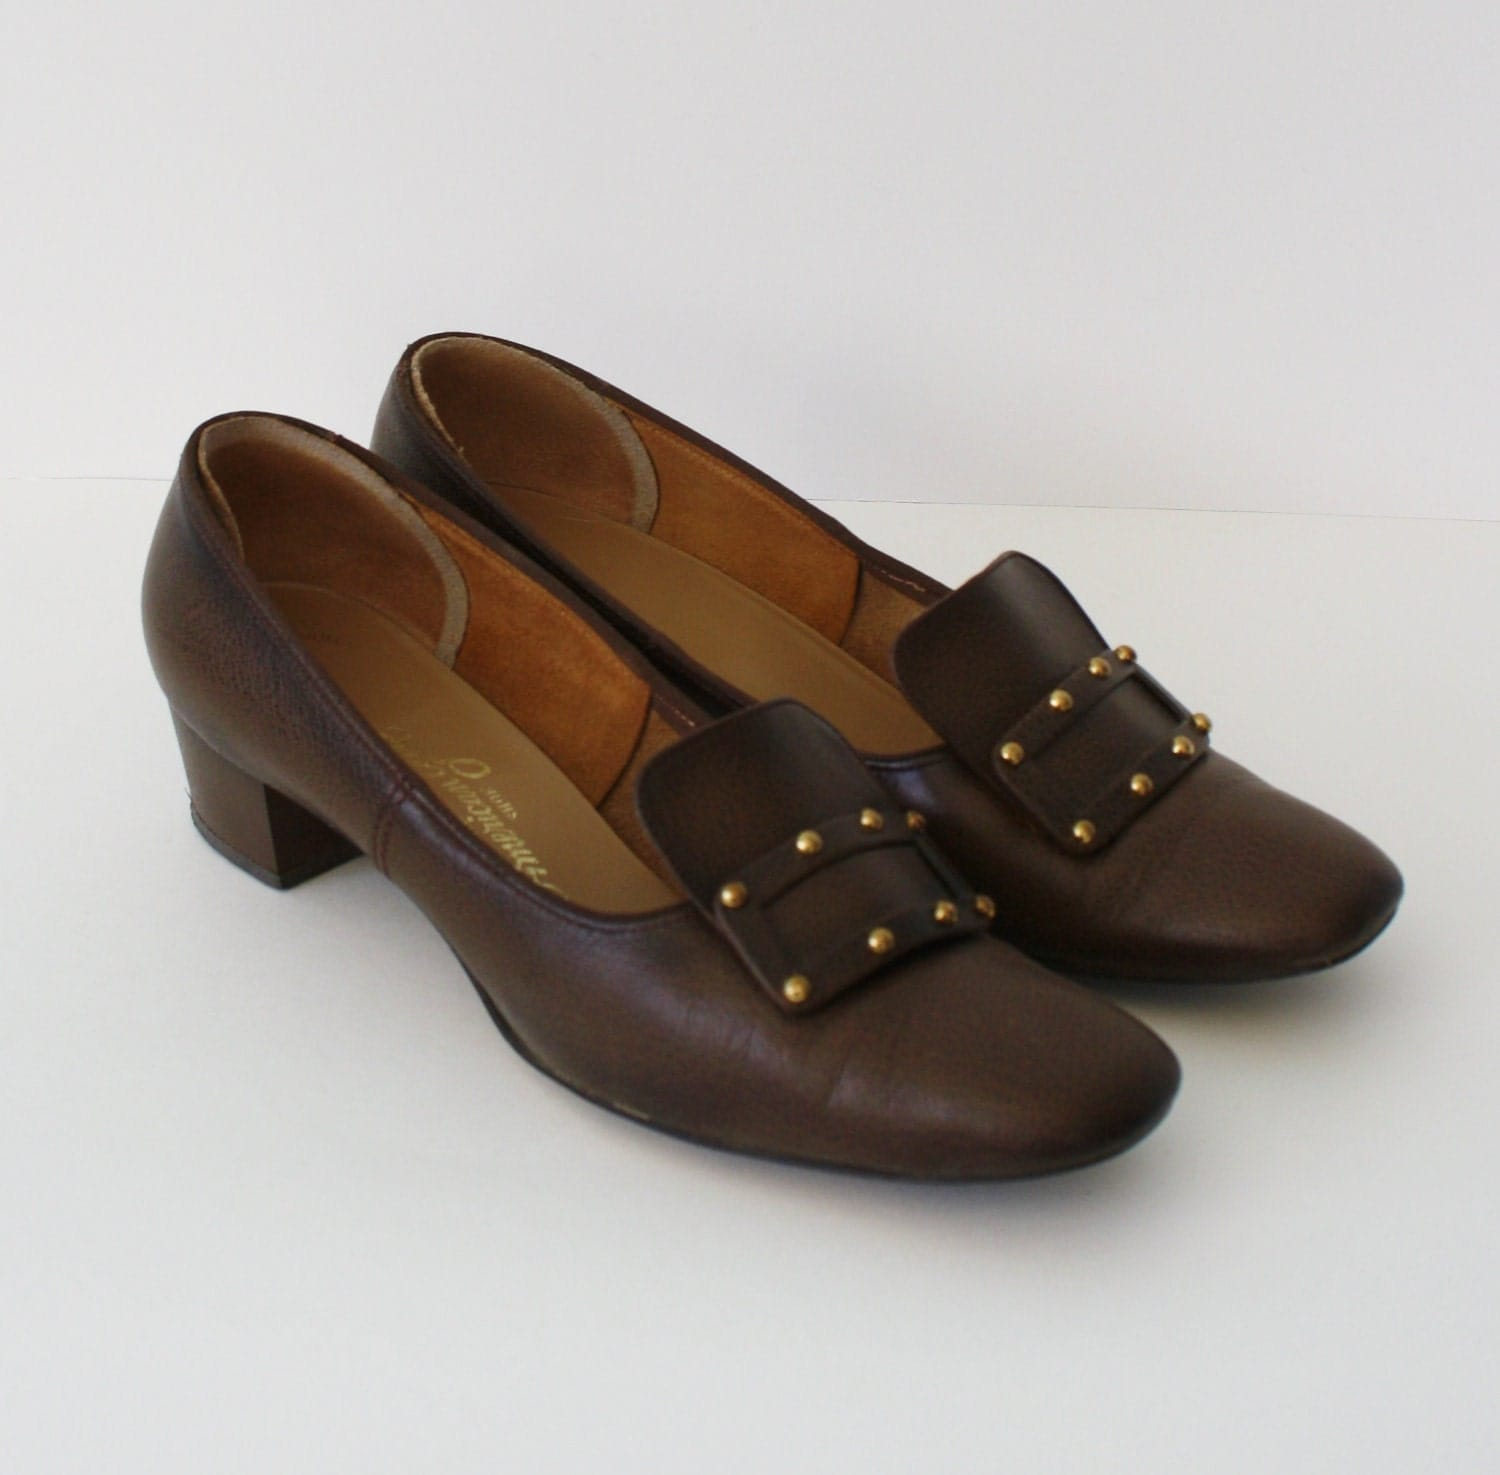 1950s shoes the american girl shoe vintage brown leather oxfords